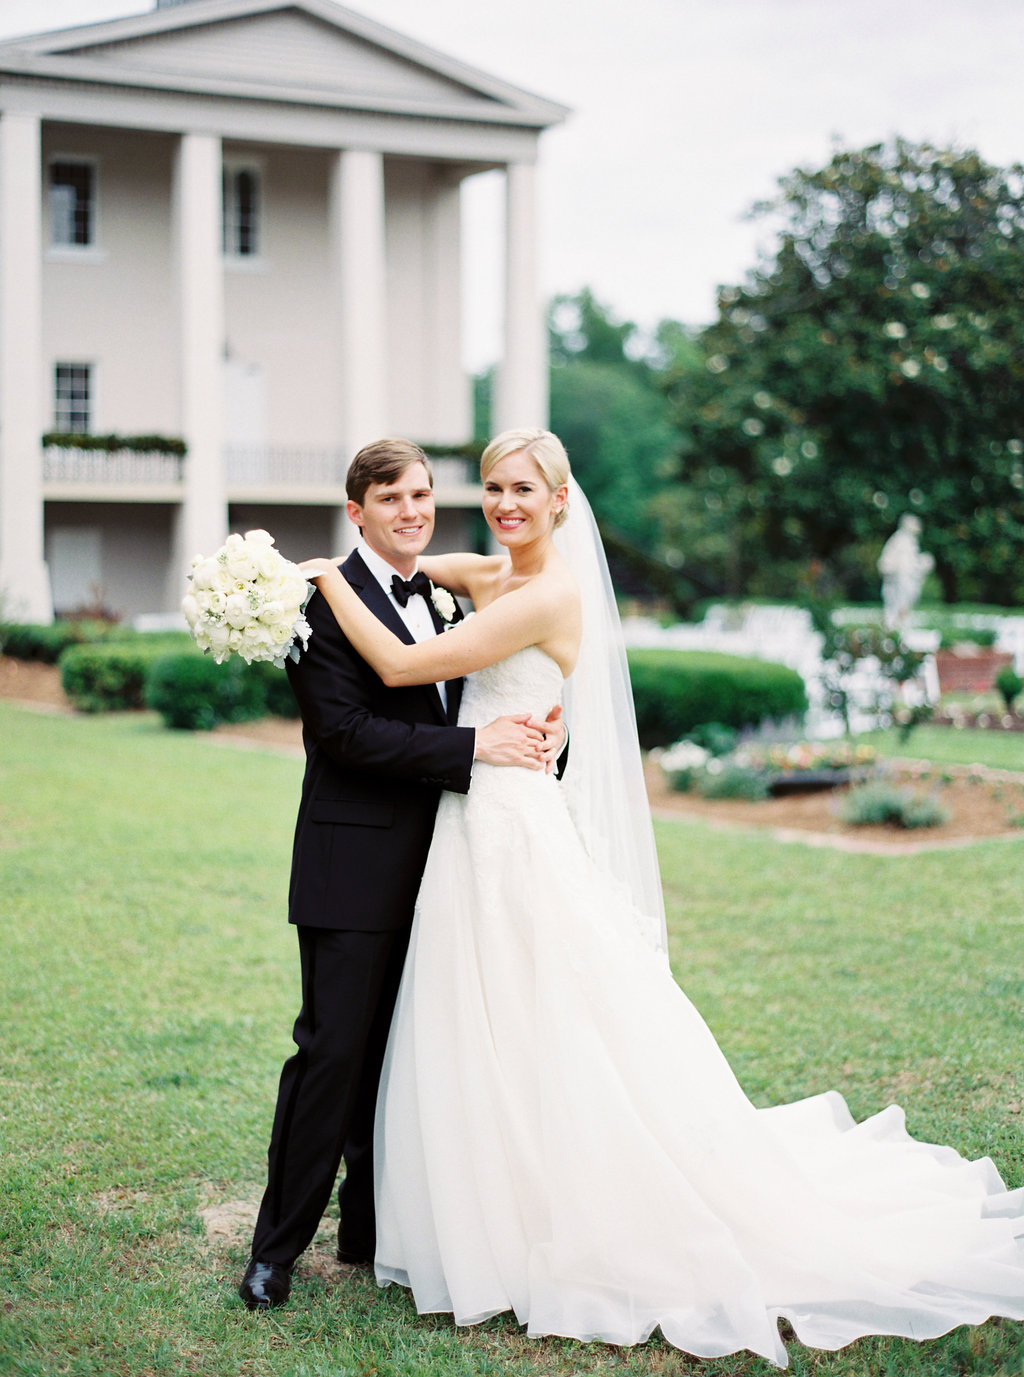 Romantic South Carolina Wedding now on Cottage Hill